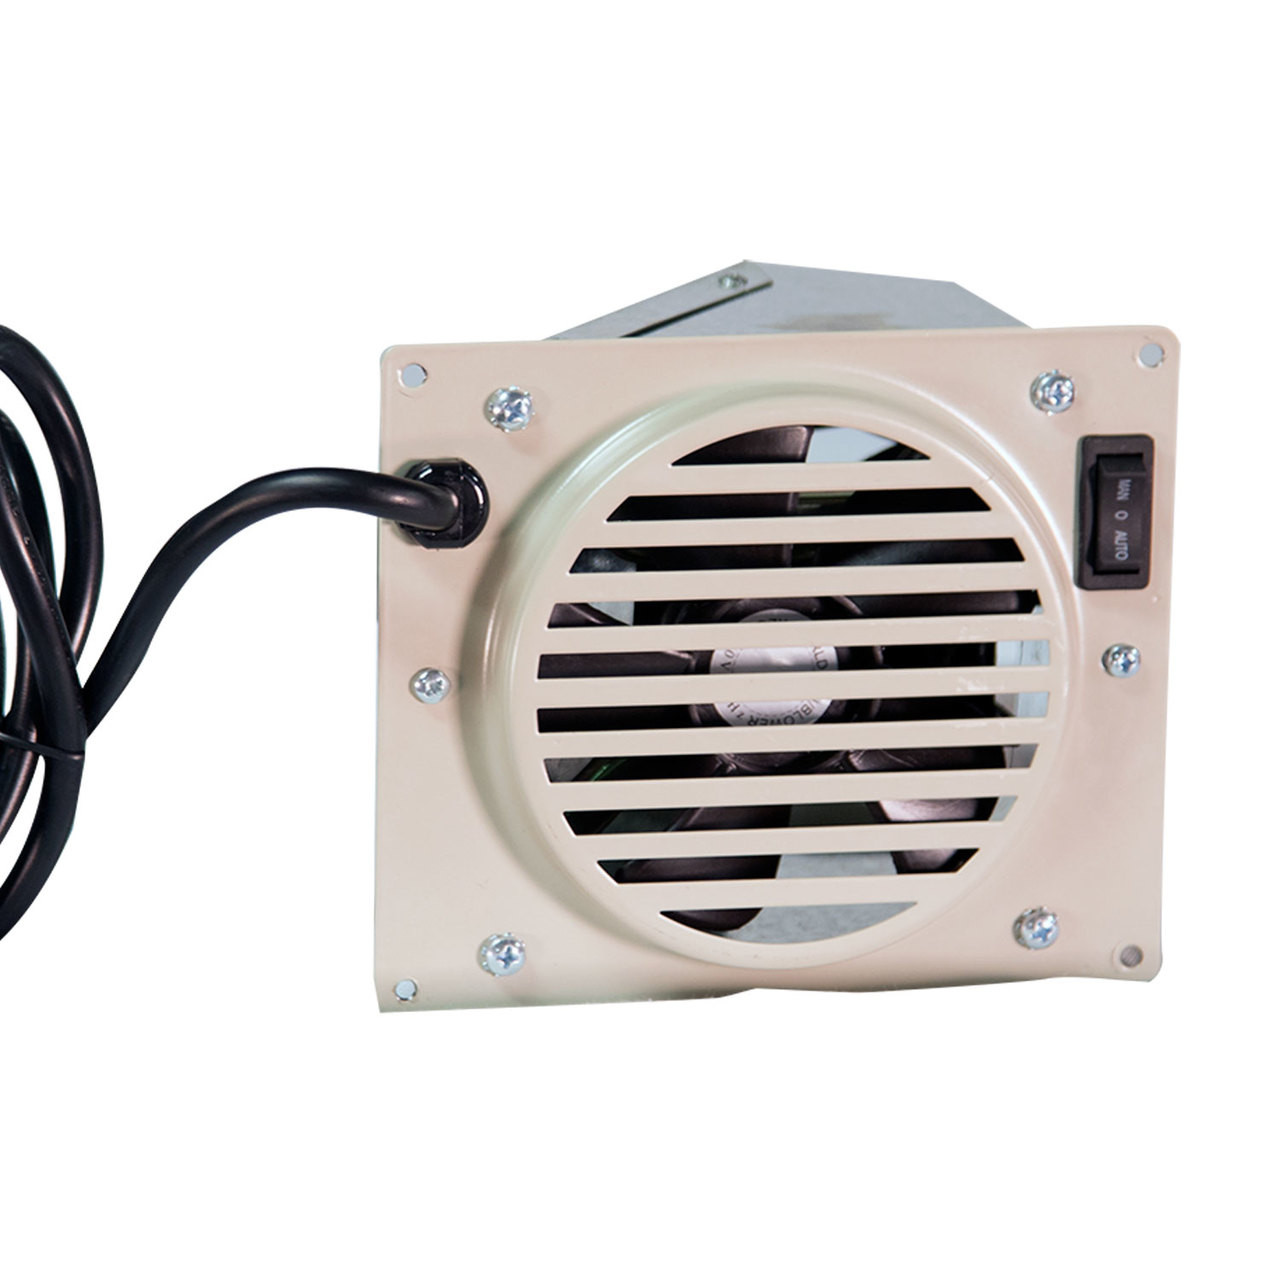 Fabulous 20 6027 Blower For Kozy World Wall Heaters Fits Models Prior To 2015 Interior Design Ideas Gentotryabchikinfo